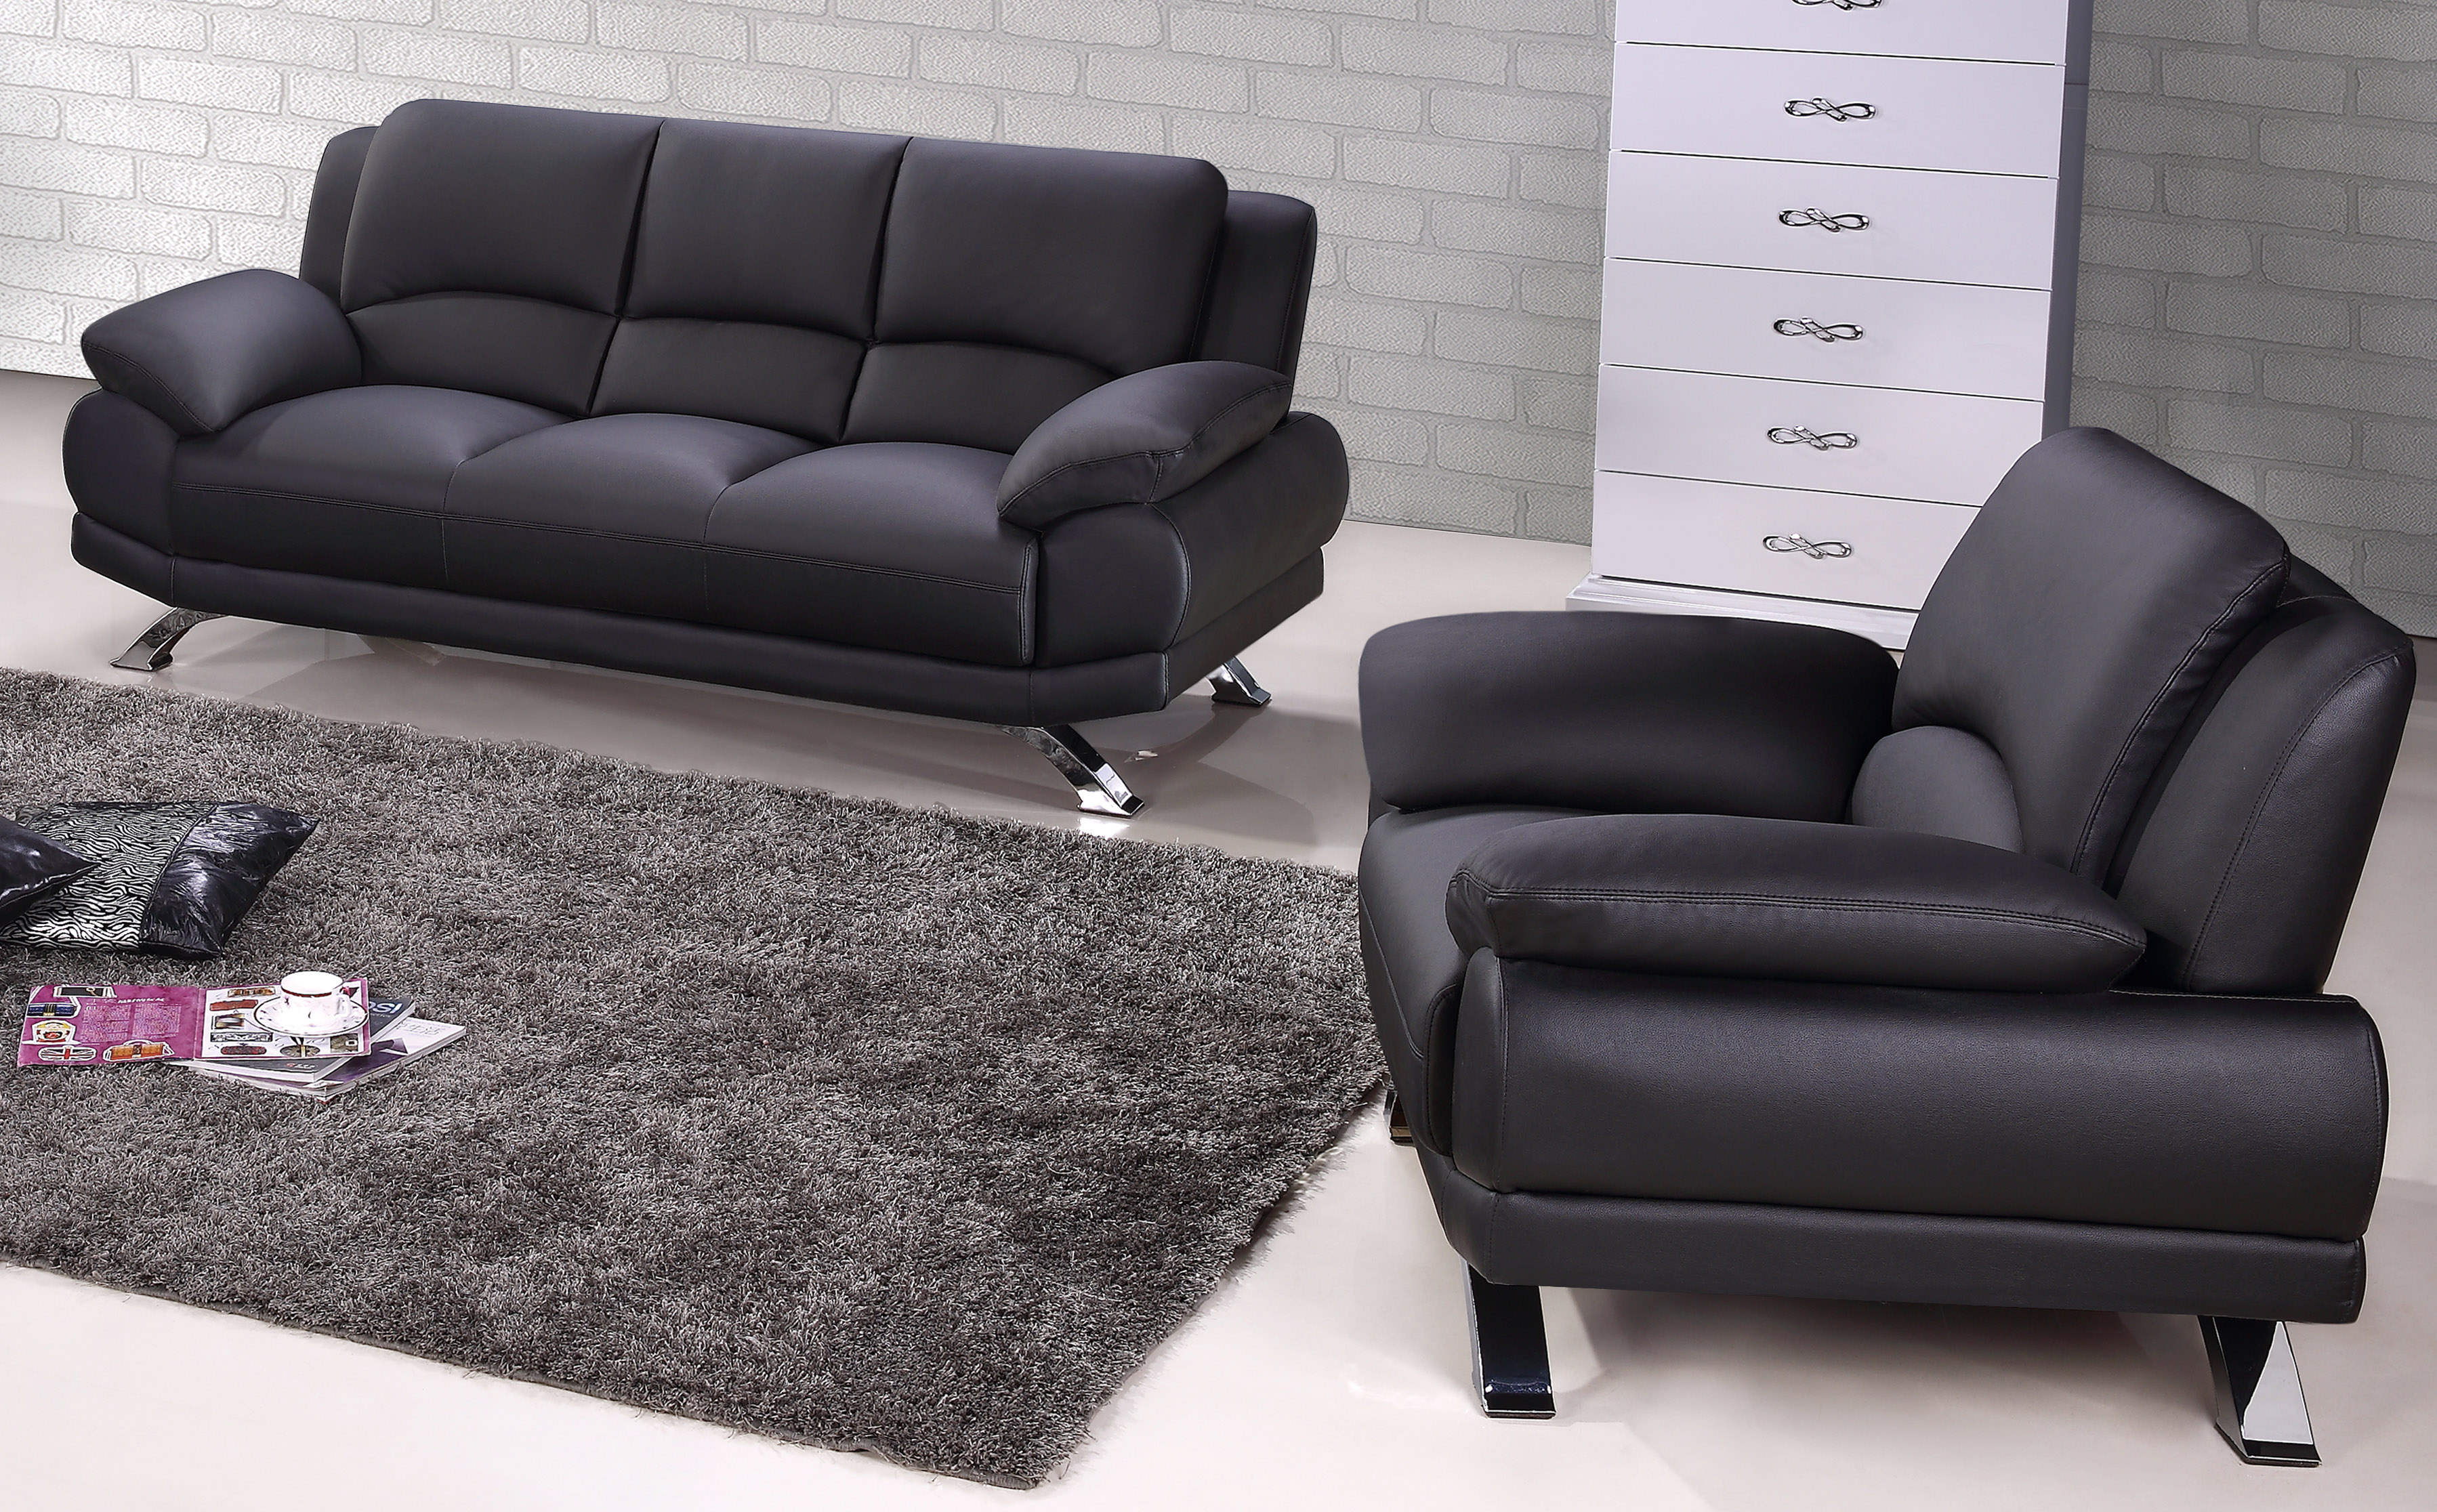 New tufted leather sofa set marmsweb marmsweb for Tufted couch set